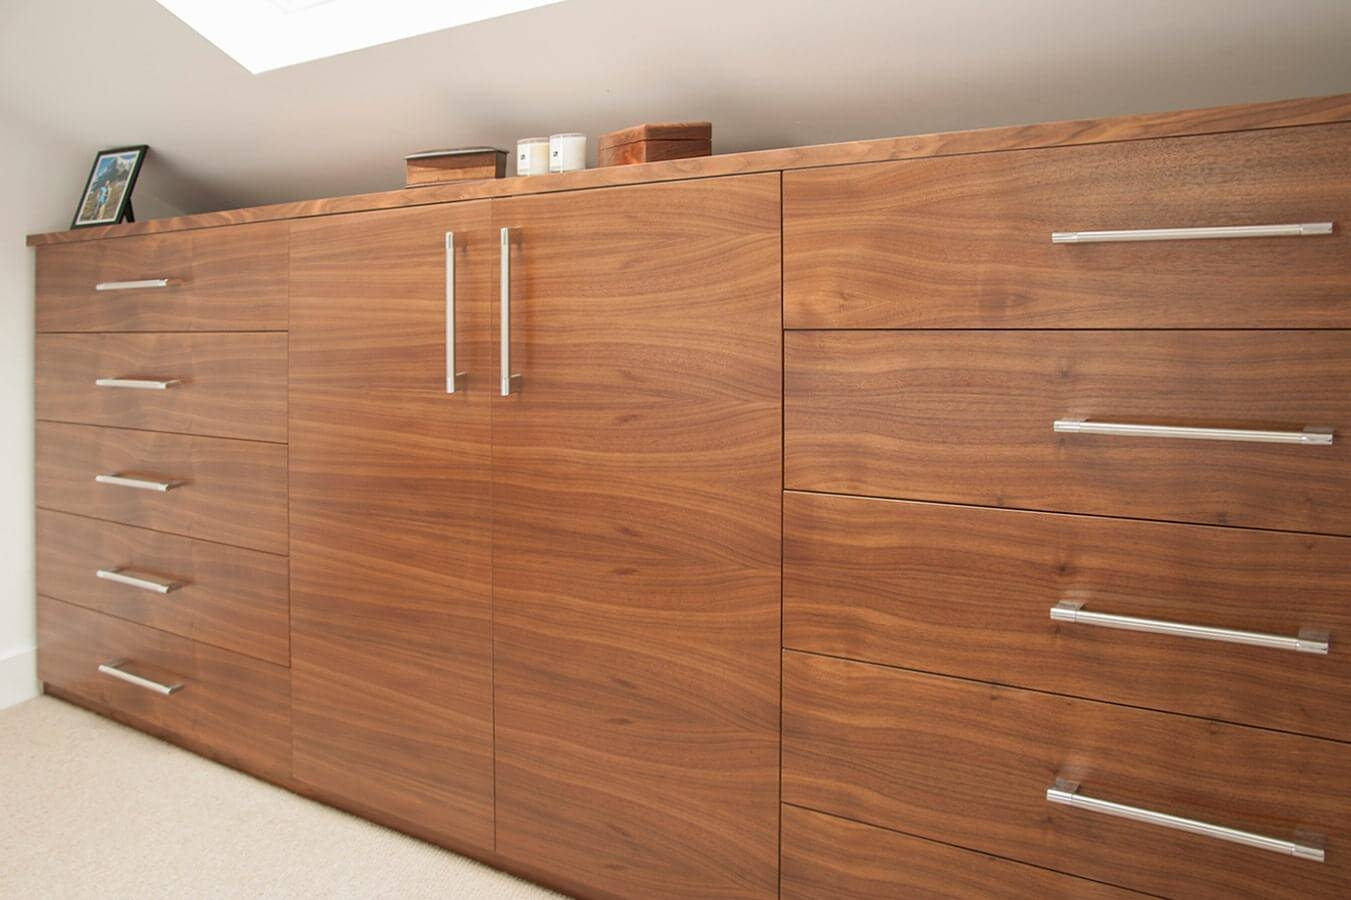 Fitted Bedrooms | Wardrobes, Beds And Chests Of Drawers throughout Wardrobes Chest of Drawers Combination (Image 9 of 15)